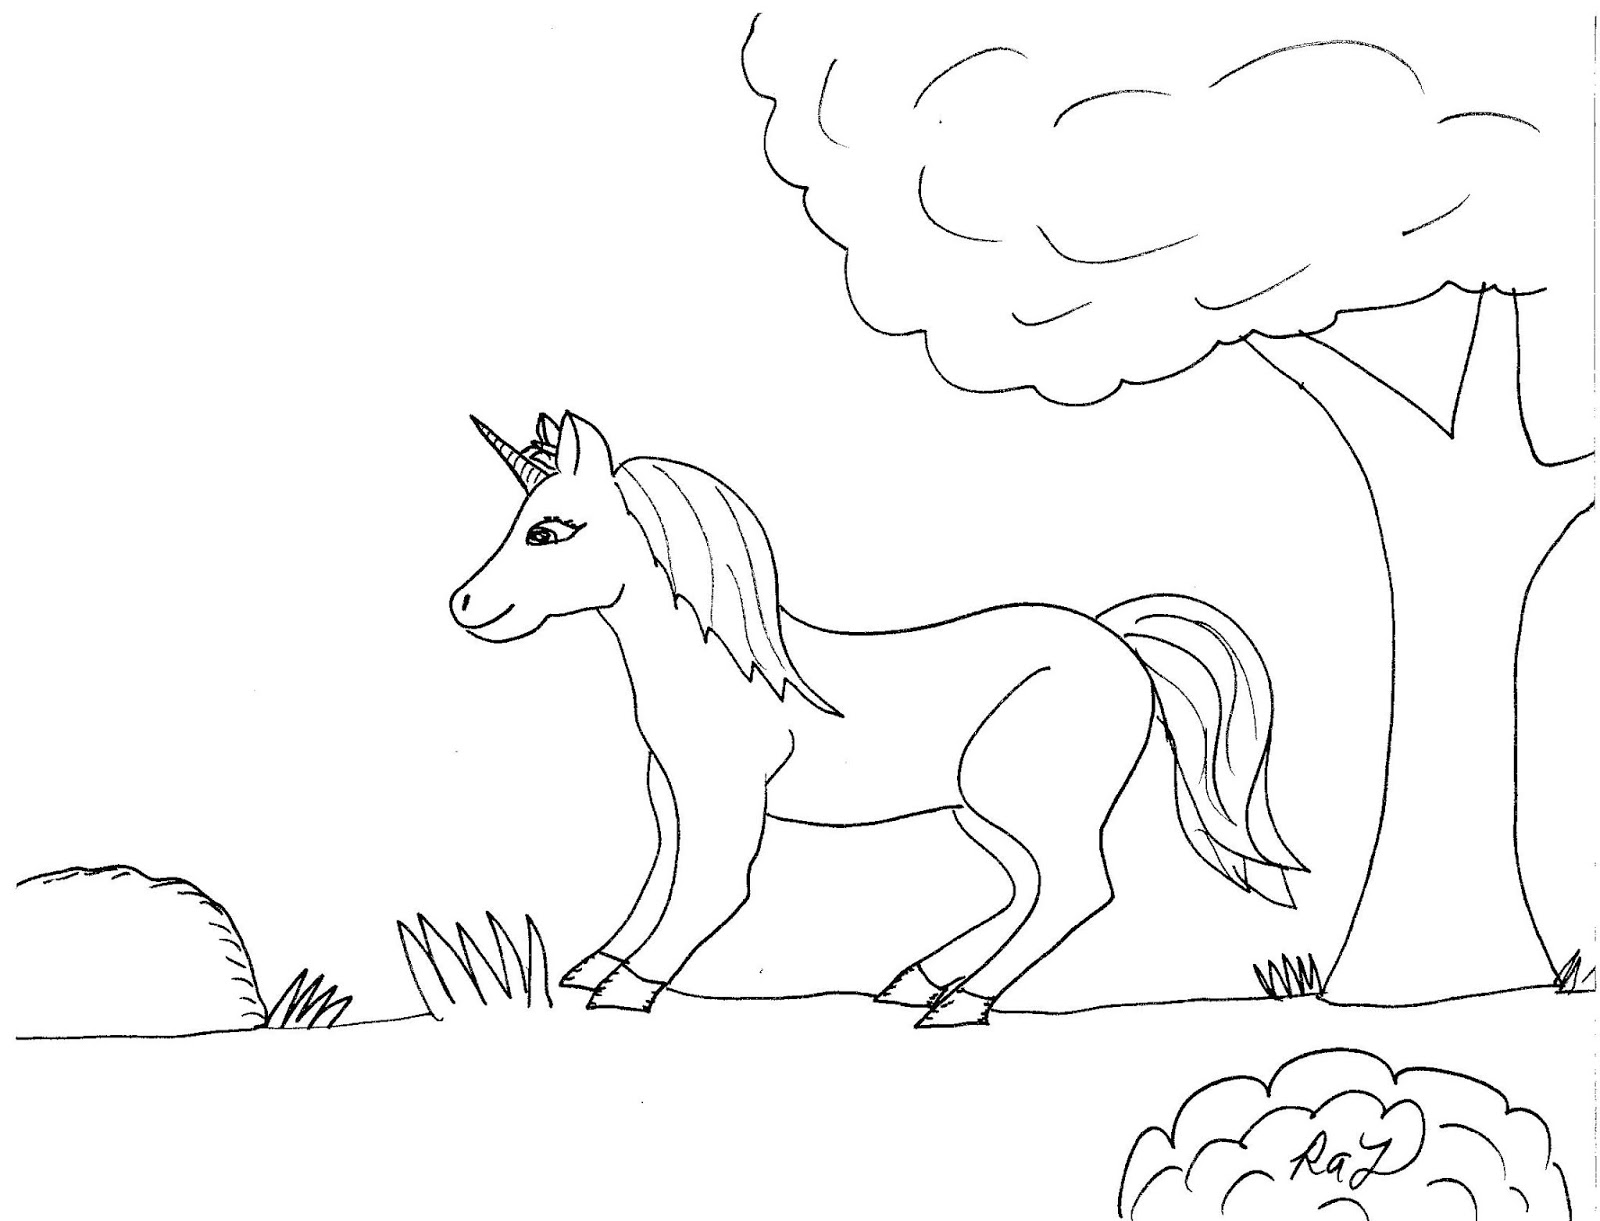 unicorn coloring pages for 9 year olds unicorn coloring child coloring year for pages 9 coloring olds unicorn